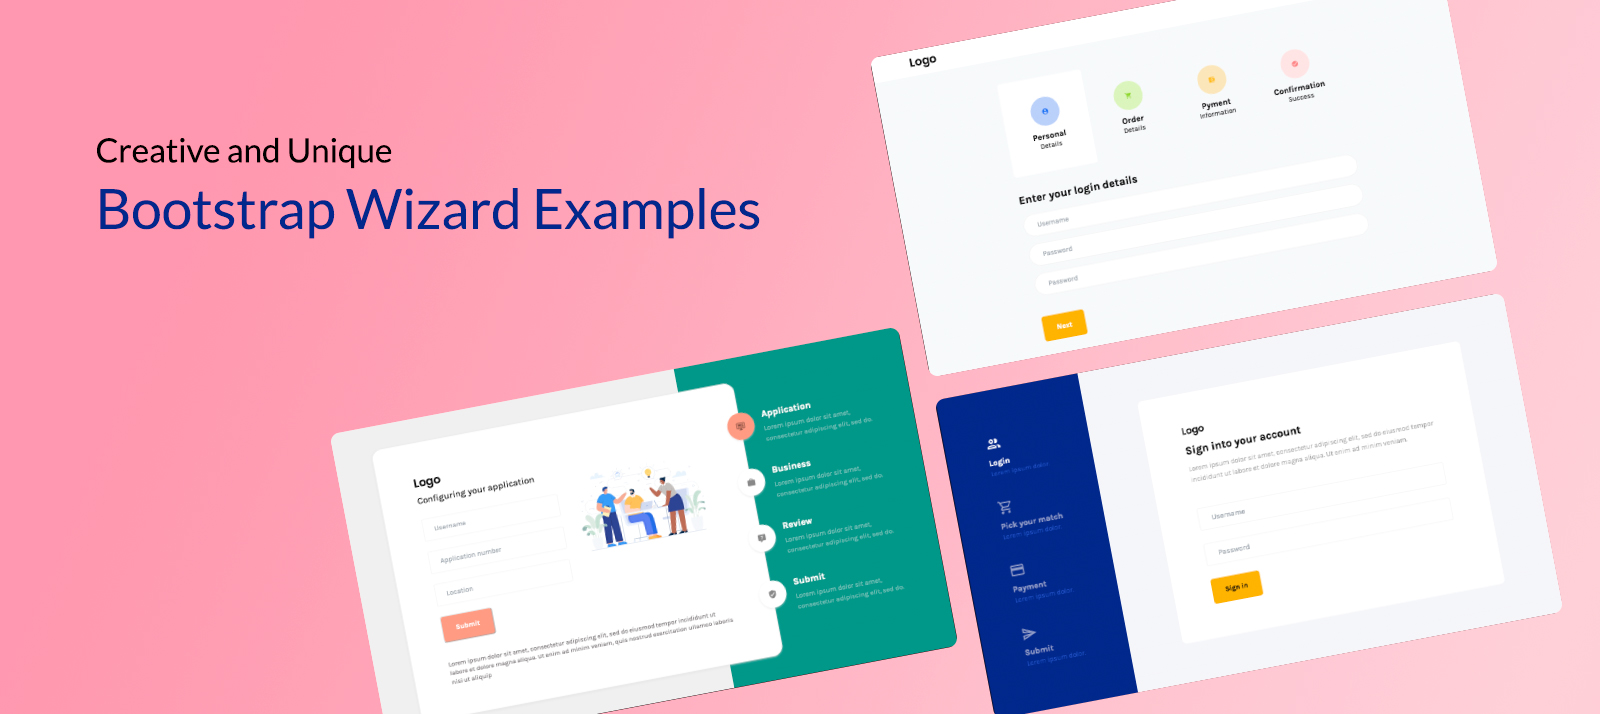 10 Creative and Unique Bootstrap Wizard Examples You Should Be Paying Attention To